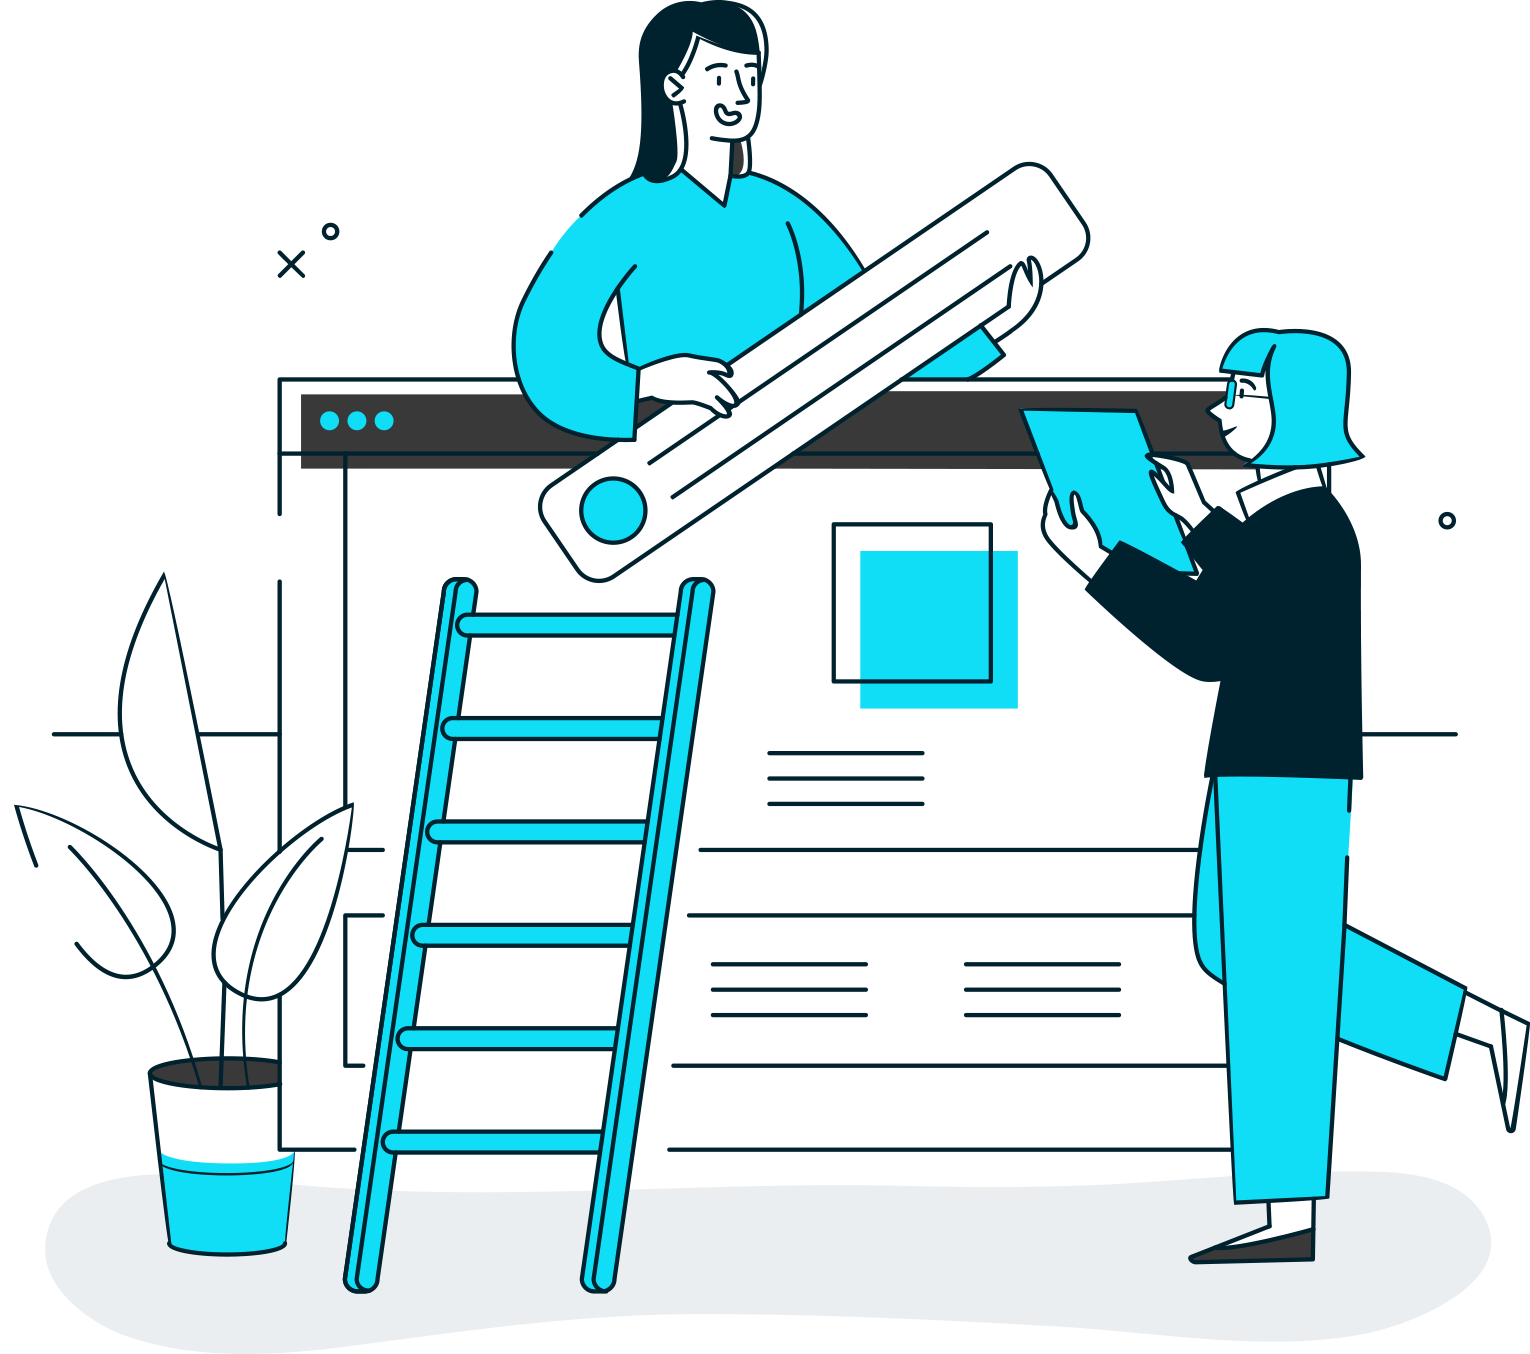 Illustration Depicting Two Women Strategizing The Layout of a Website